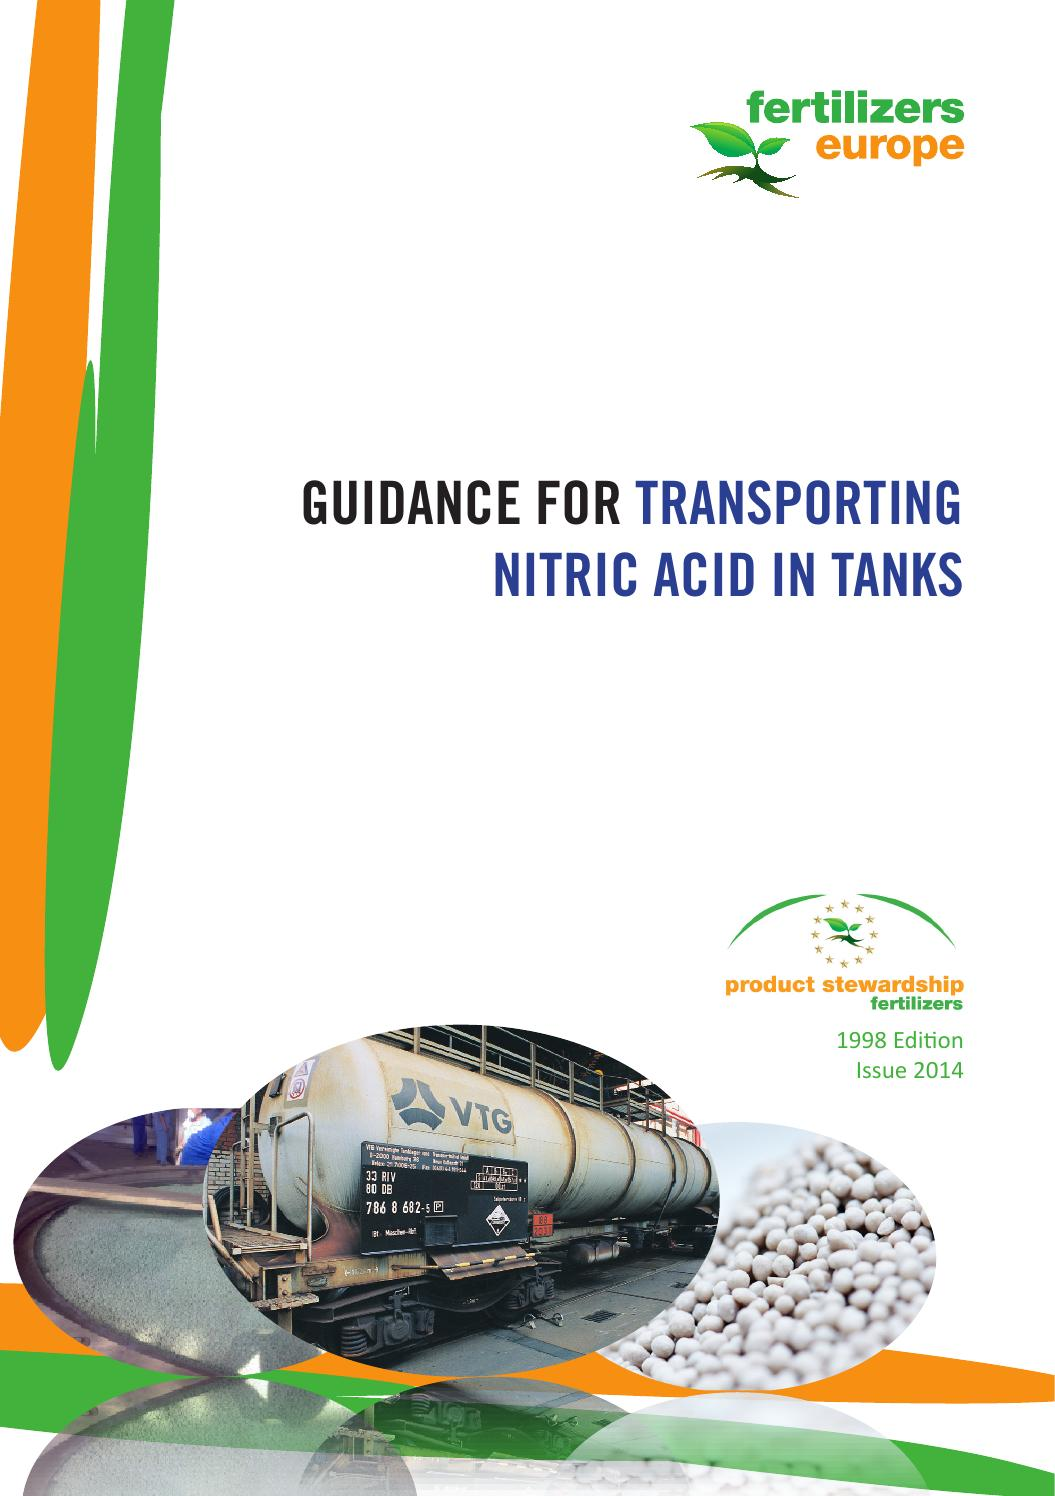 Guidelines for transporting nitric acid in tanks final by